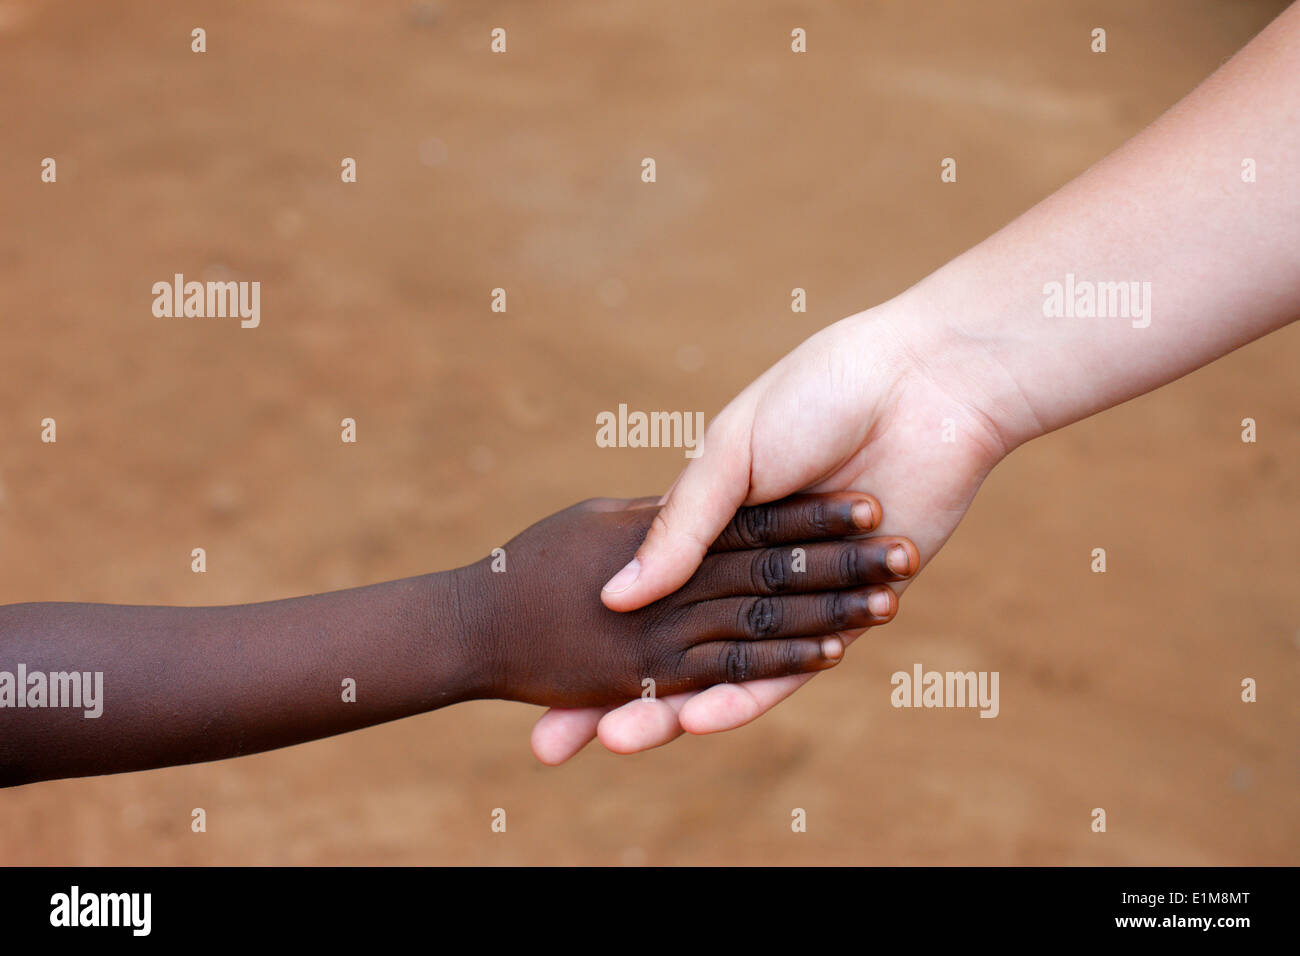 Interracial friendship - Stock Image